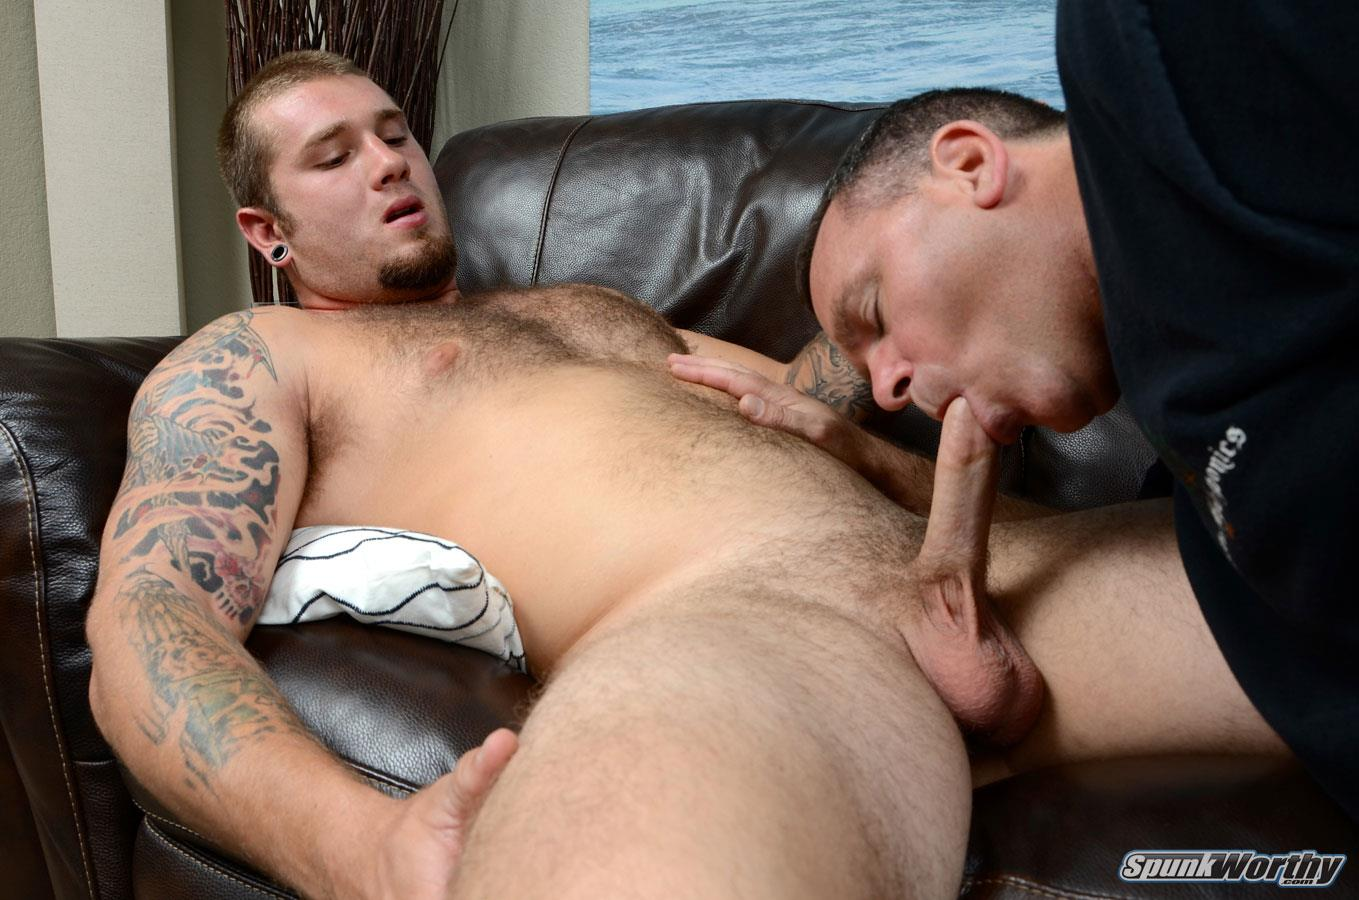 SpunkWorthy Preston Straight Guy Getting His First Blowjob Hairy Cub Amateur Gay Porn 15 Straight Hairy Young Muscle Cub Gets His First Blowjob From Another Guy